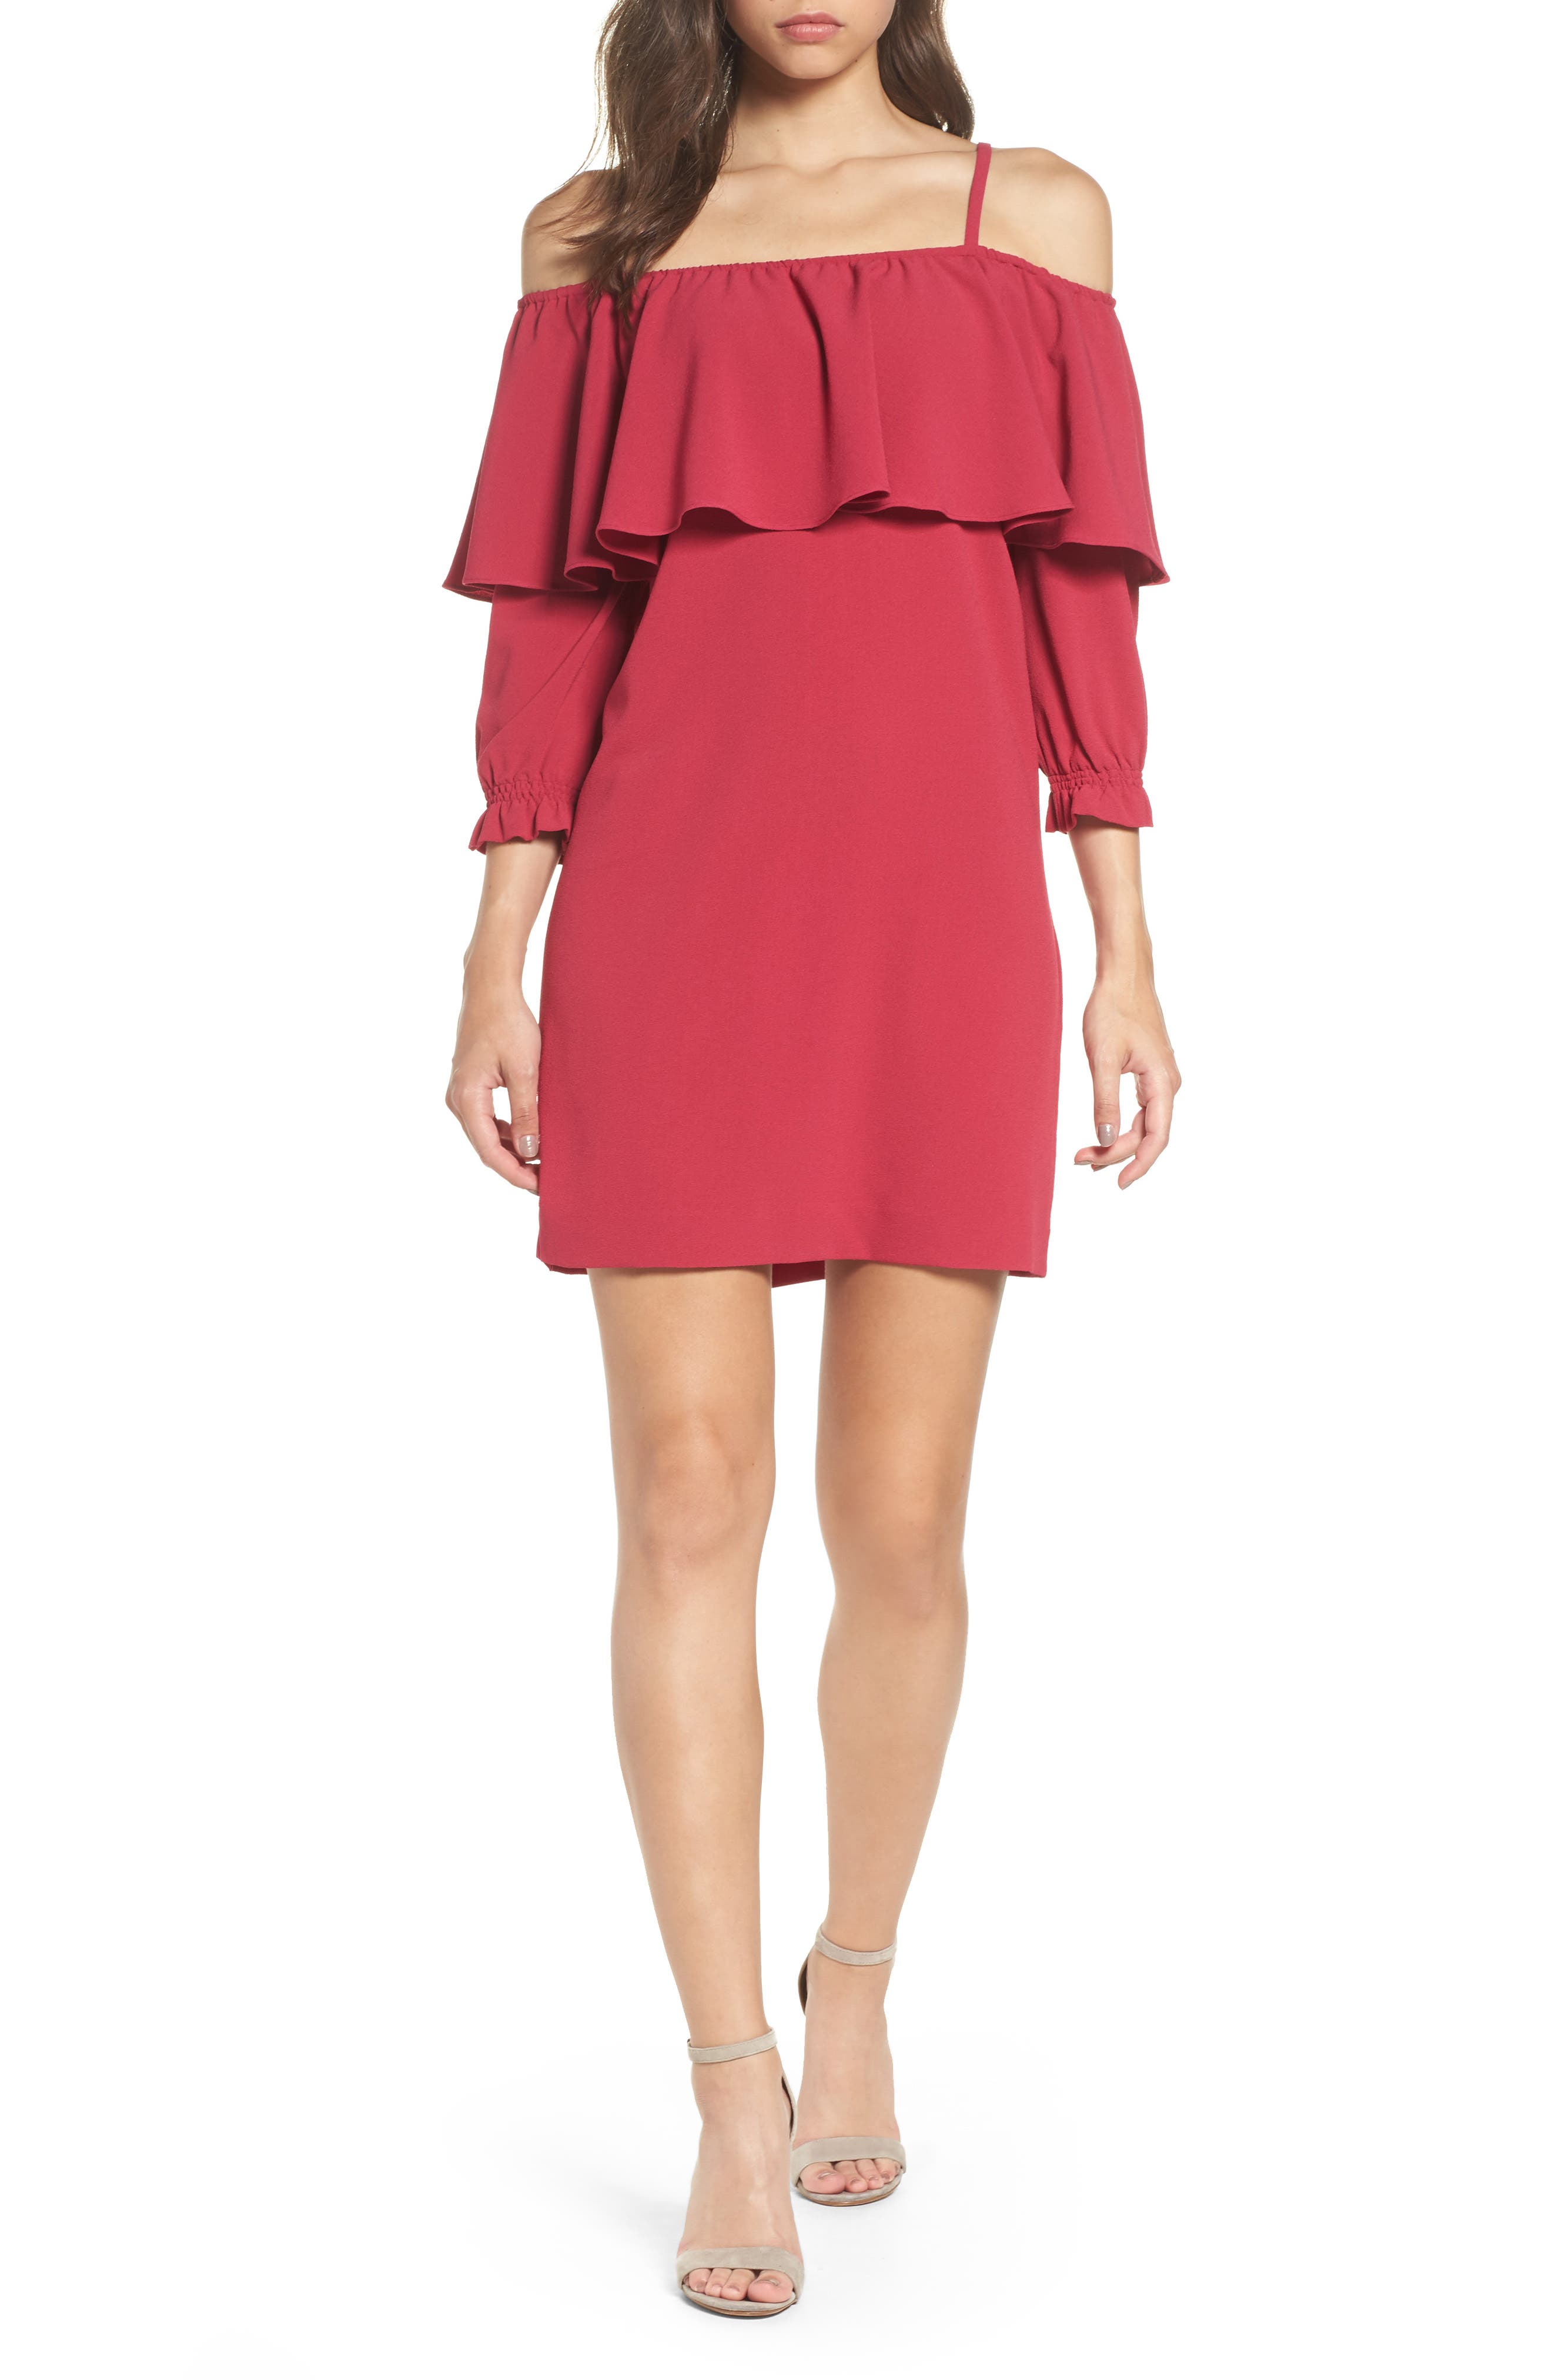 Alternate Image 1 Selected - Felicity & Coco Meadow Ruffle Cold Shoulder Shift Dress (Nordstrom Exclusive)